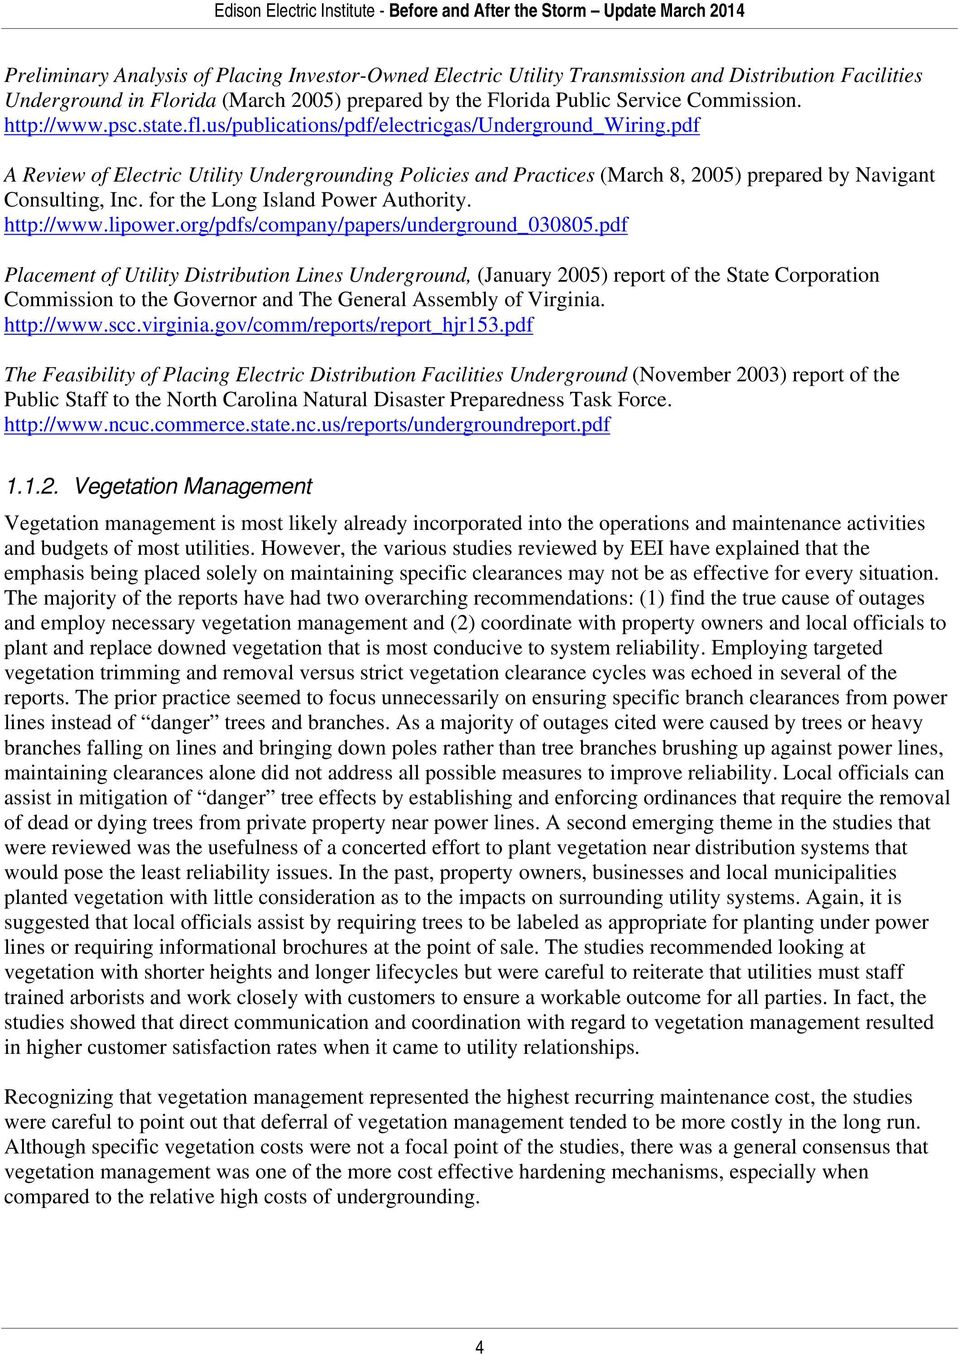 pdf A Review of Electric Utility Undergrounding Policies and Practices (March 8, 2005) prepared by Navigant Consulting, Inc. for the Long Island Power Authority. http://www.lipower.